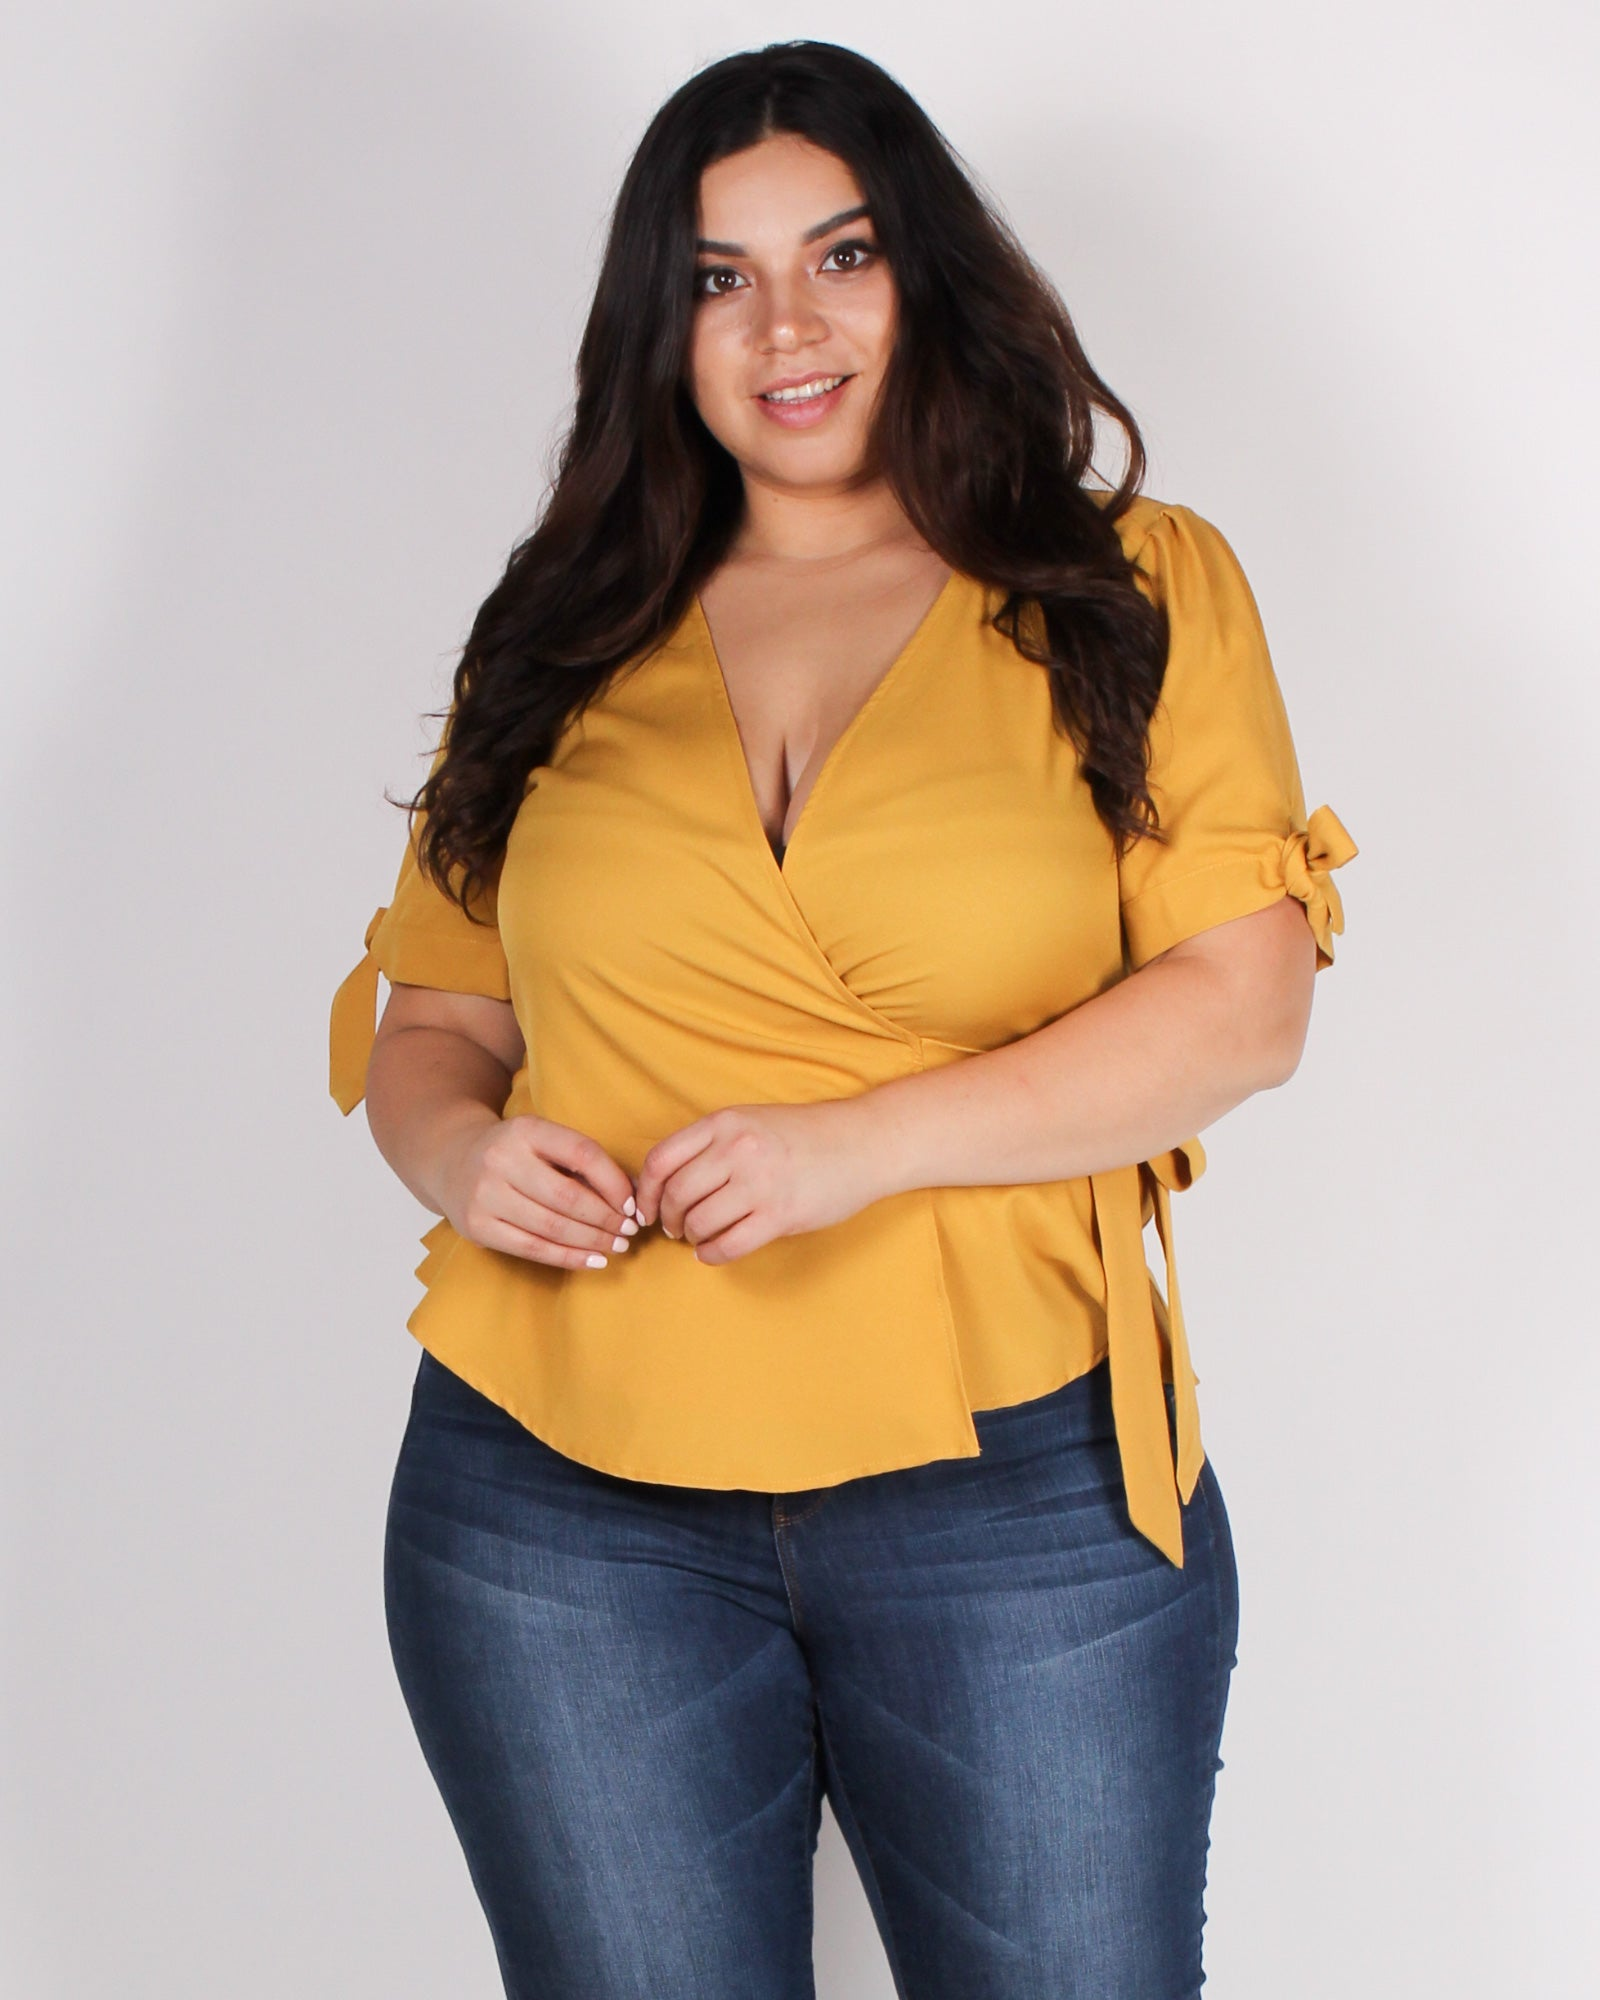 Fashion Q Shop Q Endless Potential Peplum Plus Blouse (Dark Mustard) ZB10095